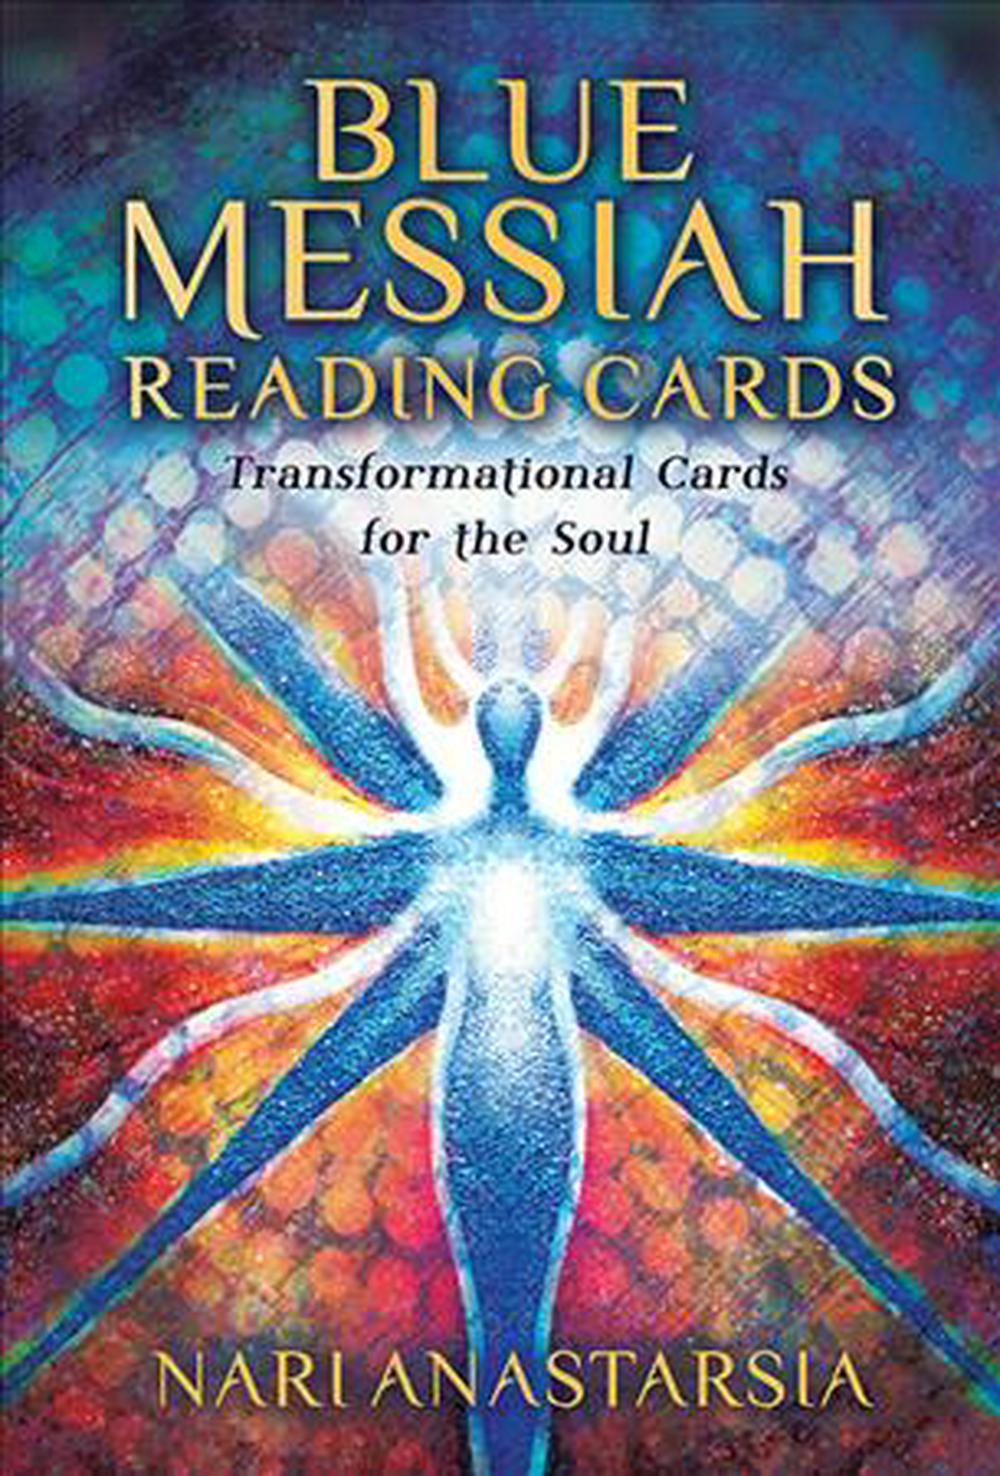 Blue Messiah Reading Cards: Transformational Cards for the Soul - 36 full colour cards and 120 page book